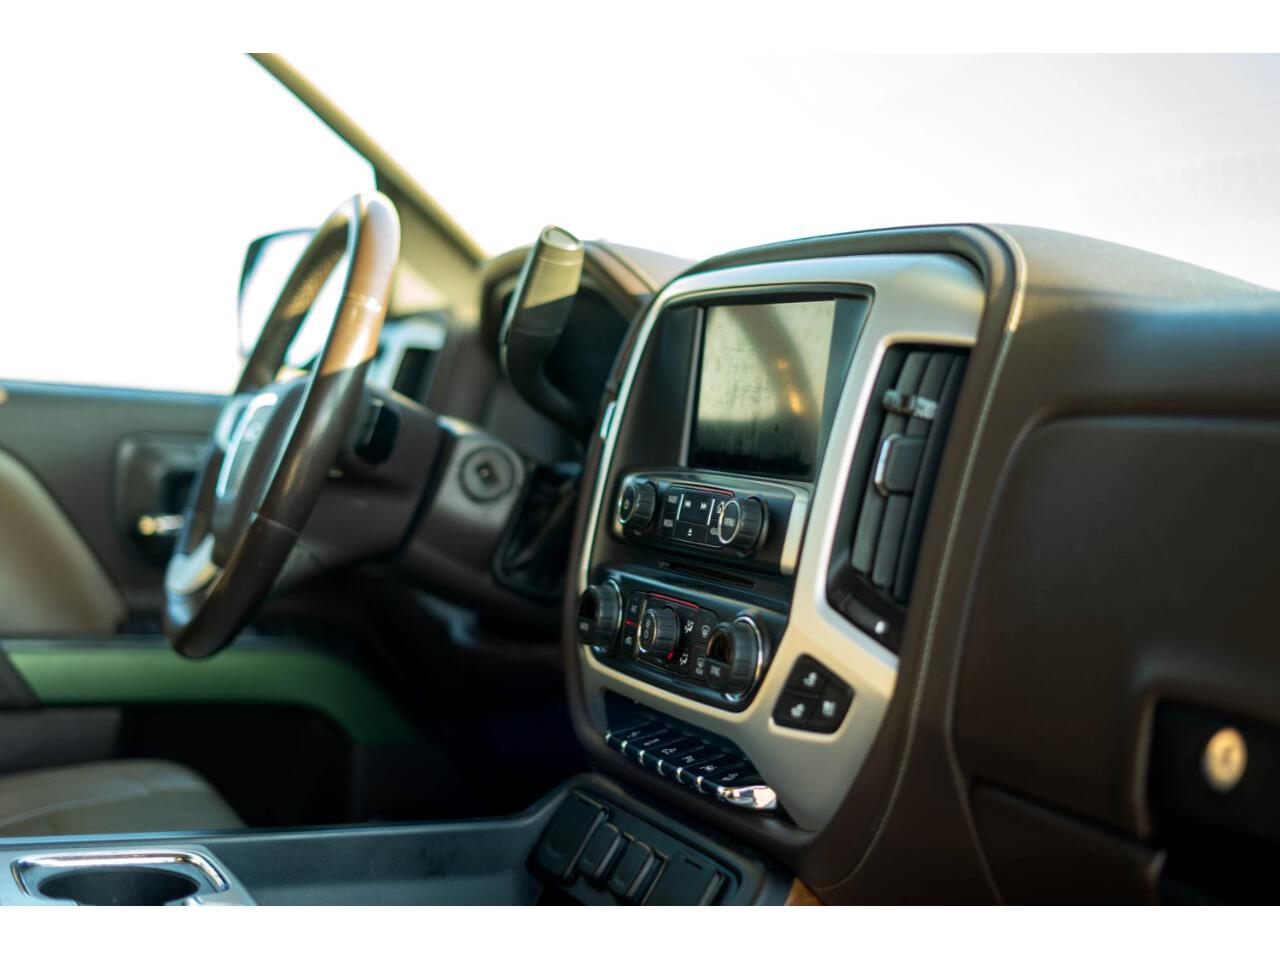 2016 GMC Sierra 1500 (CC-1418881) for sale in Cicero, Indiana